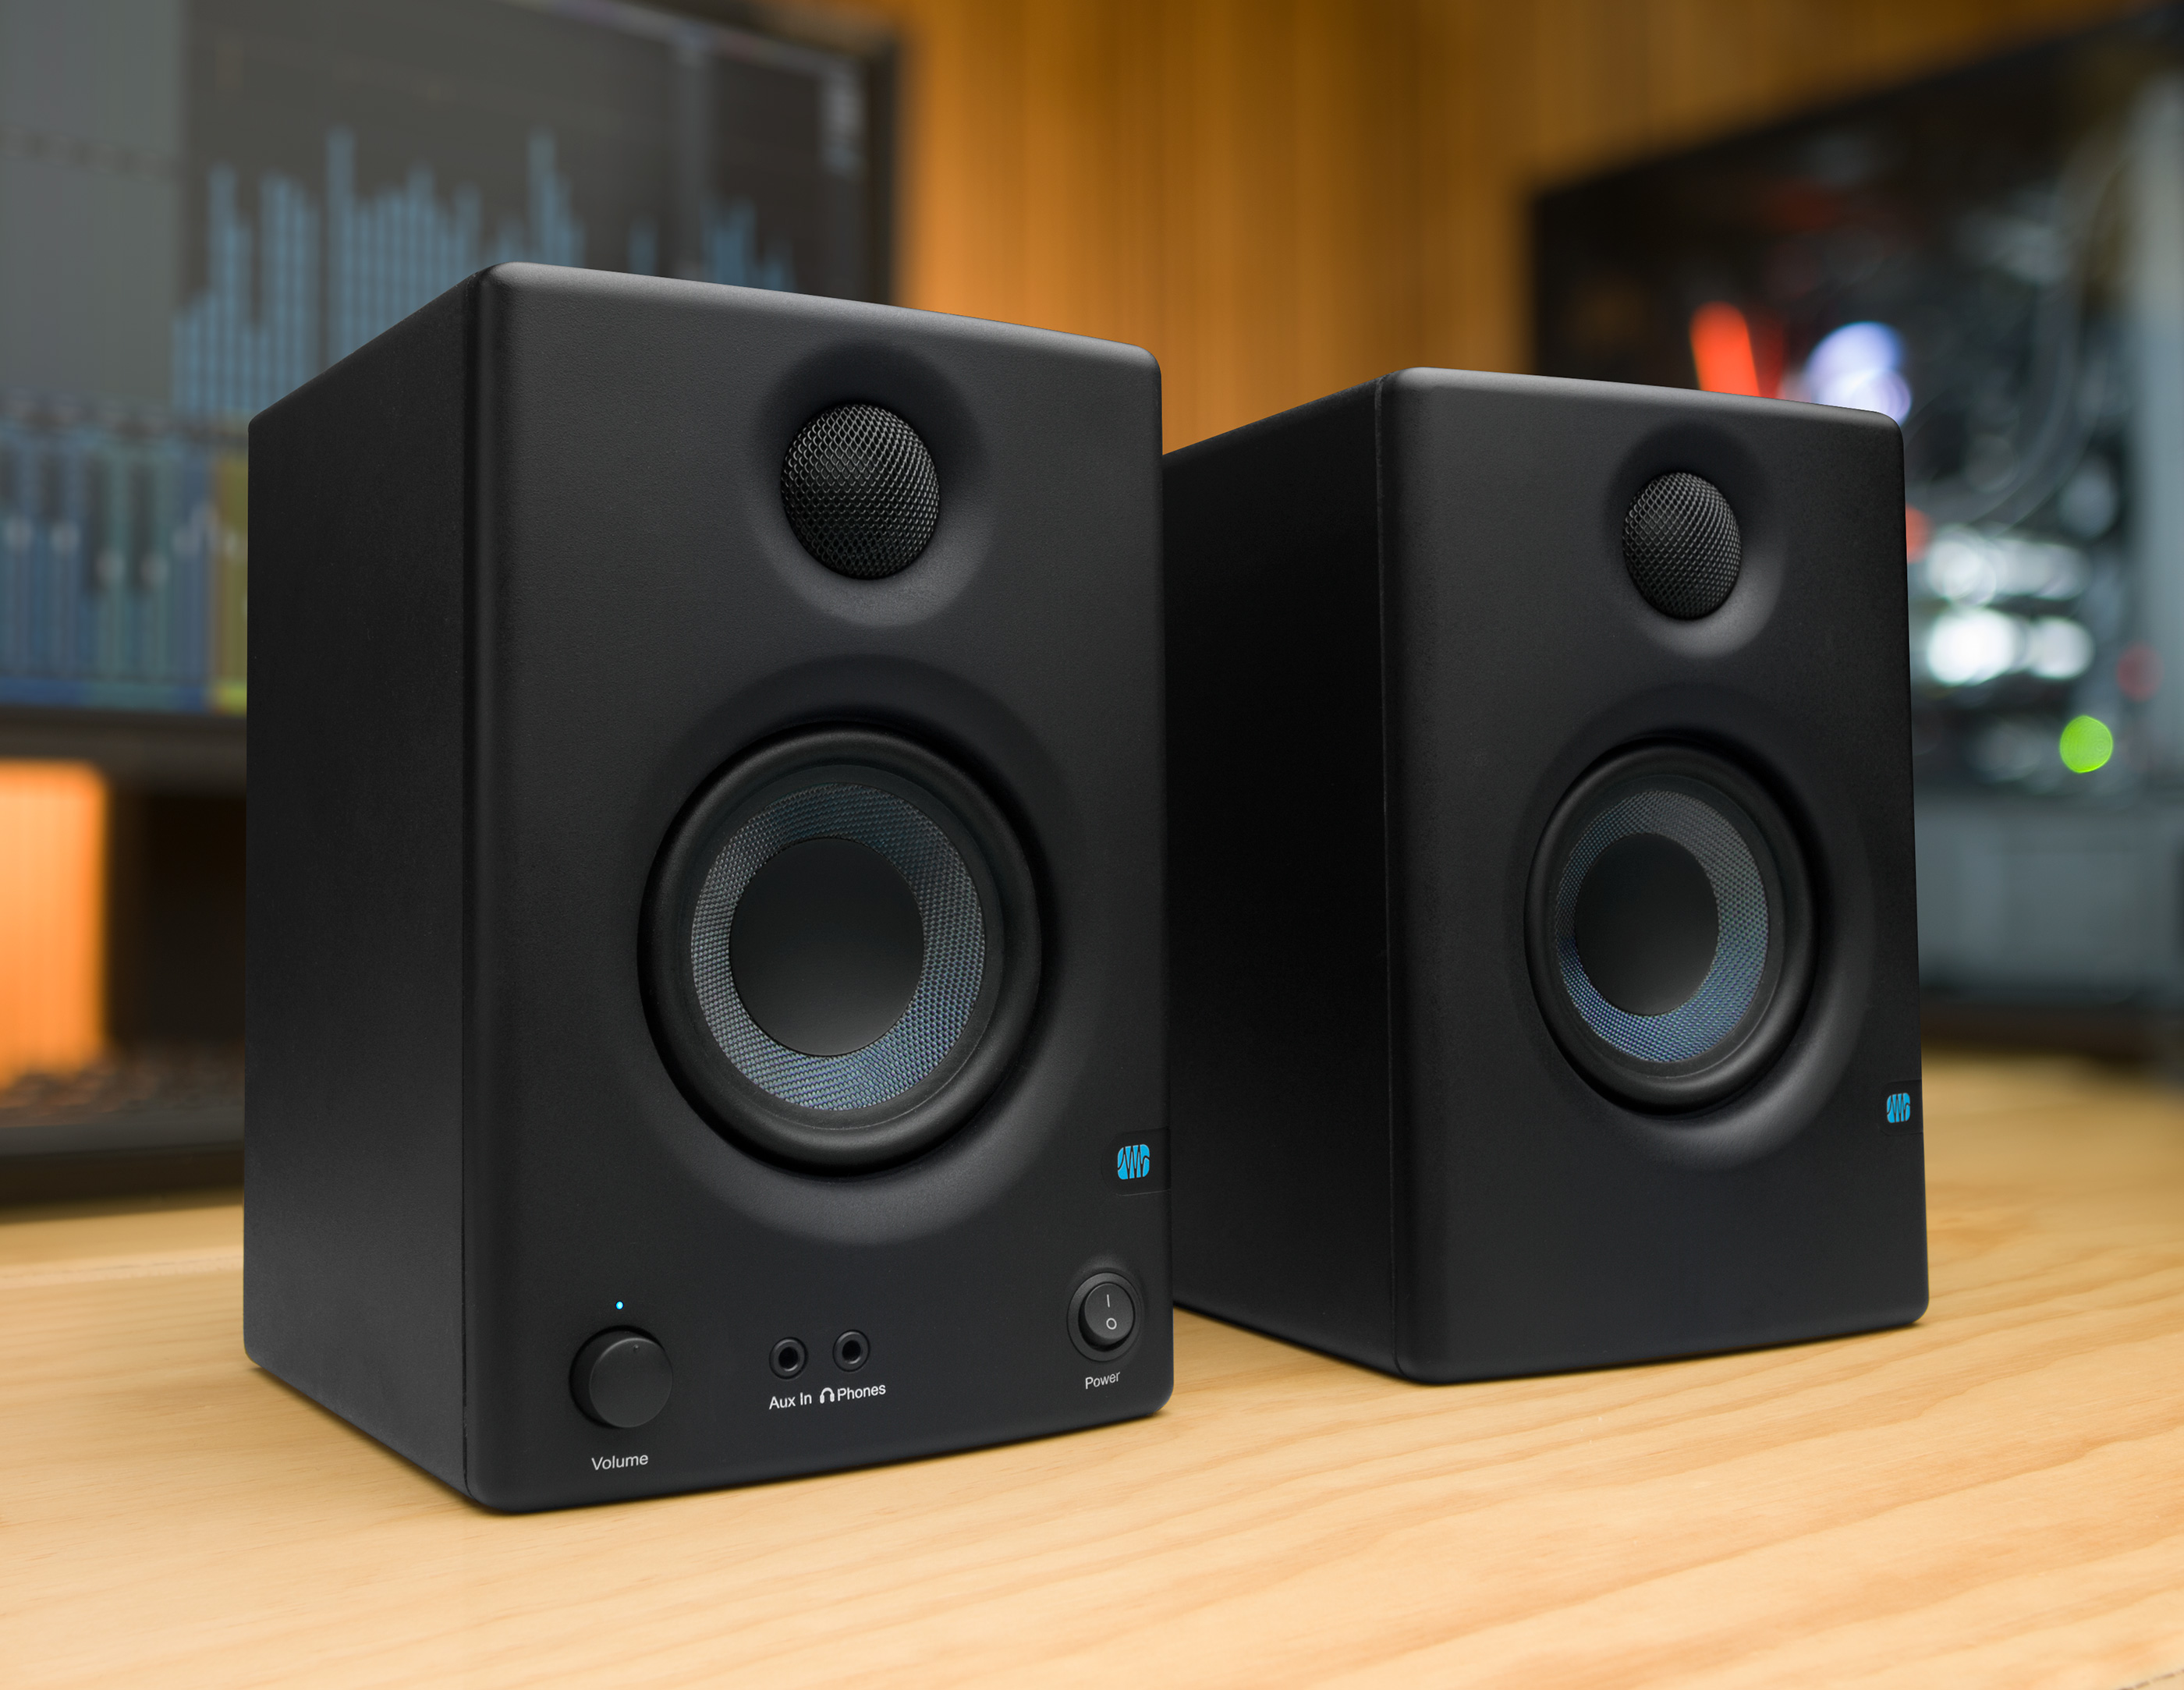 PreSonus Eris E3.5 Speakers Ideal for Gaming and Home Video Production |  Press Releases | PreSonus